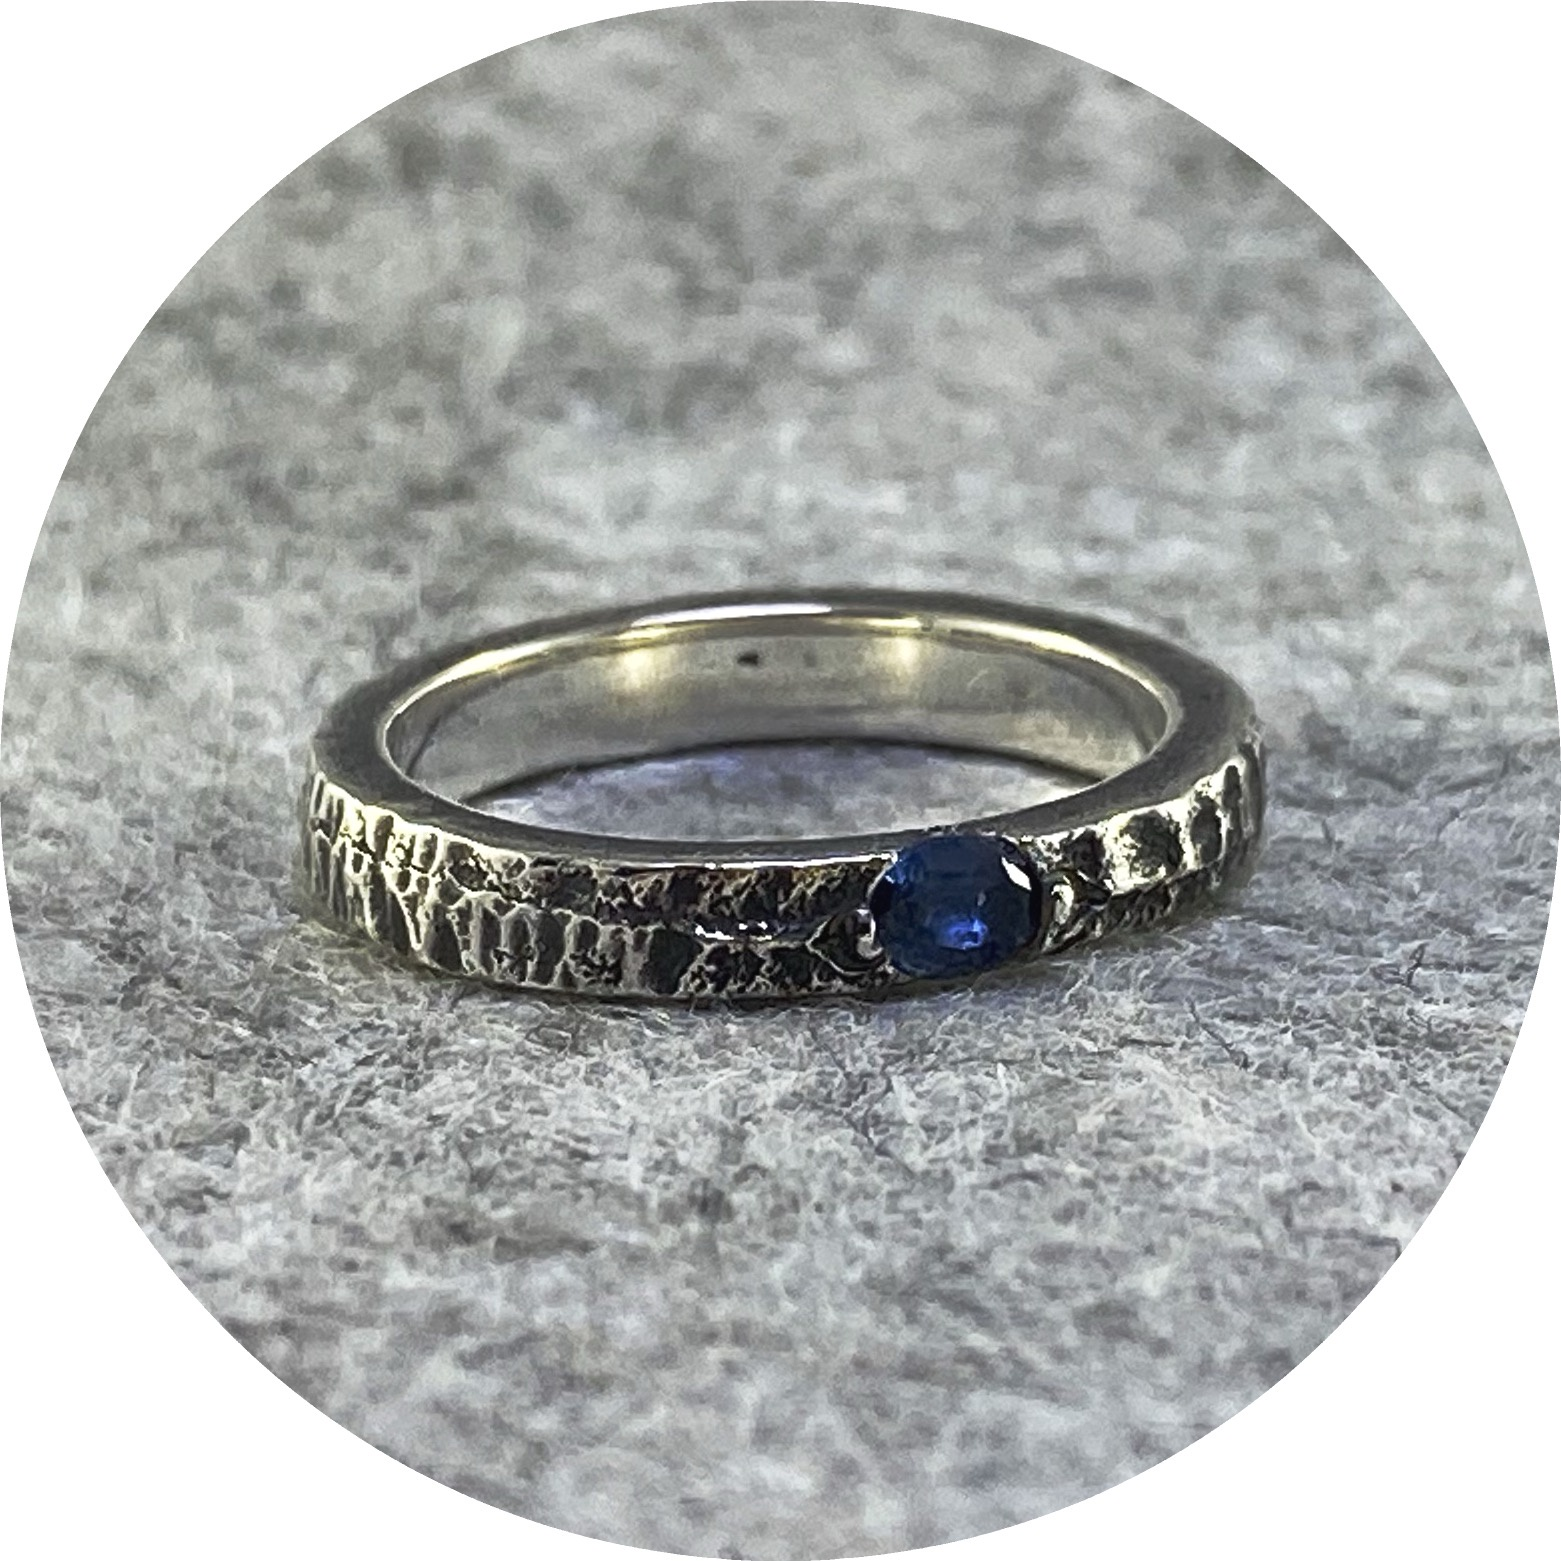 Kirra-Lea Caynes- Sapphire, blue cast in place into sterling silver.